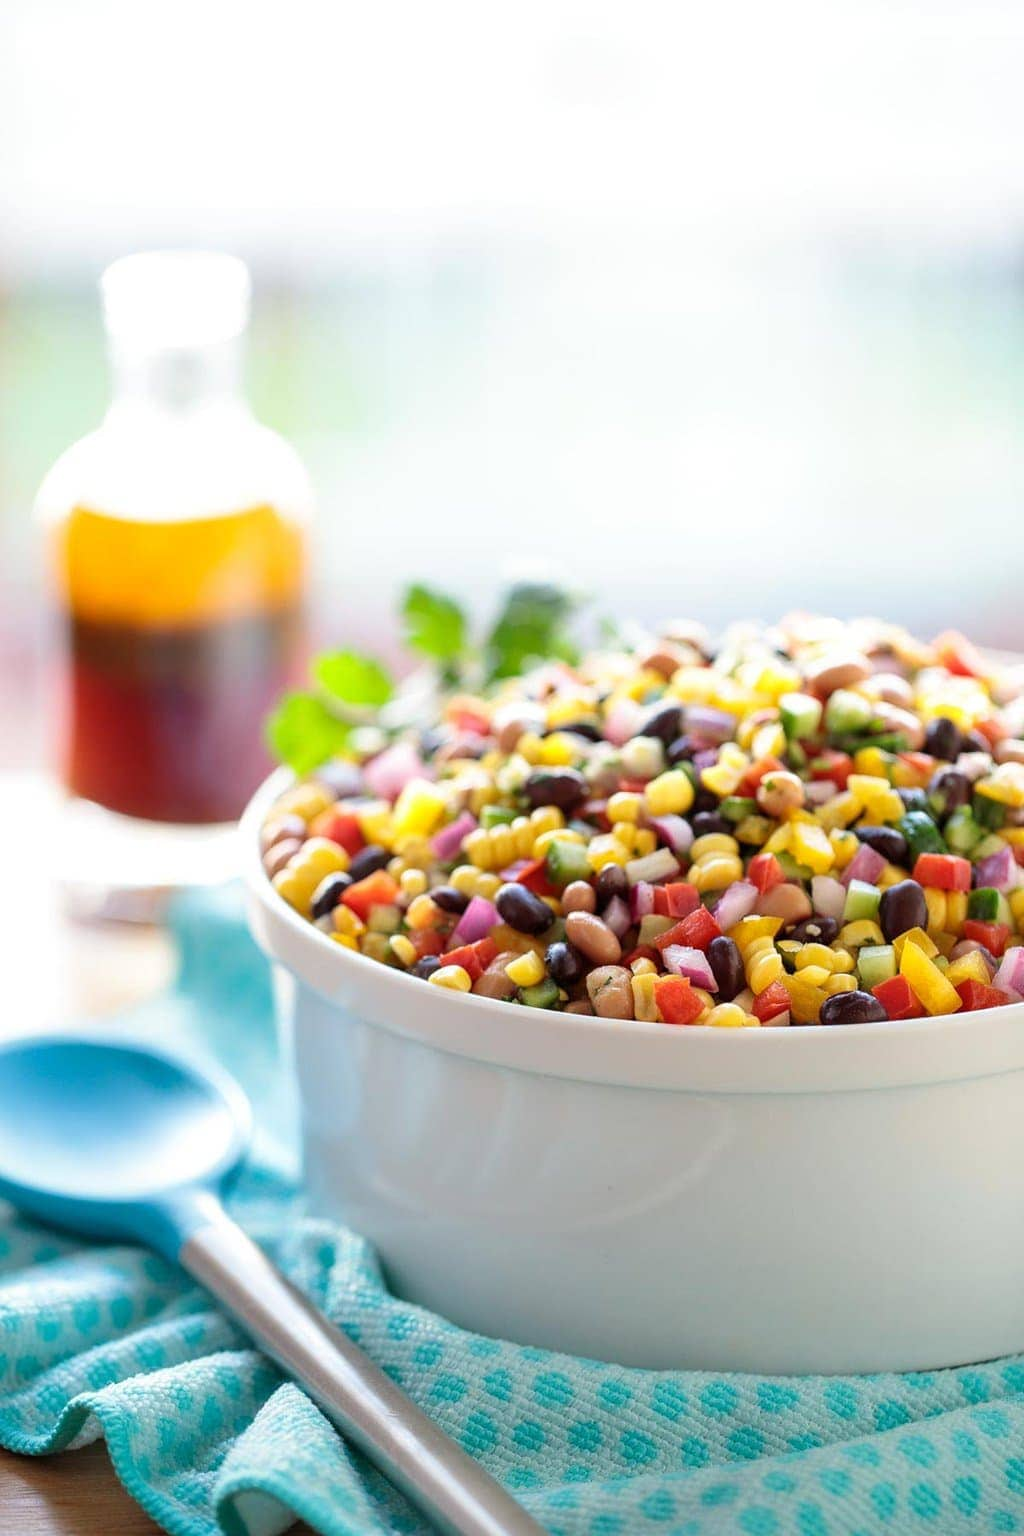 Photo of a white serving bowl of Mexican Bean Salad on a turquoise cloth with a glass jar of dressing in the background.